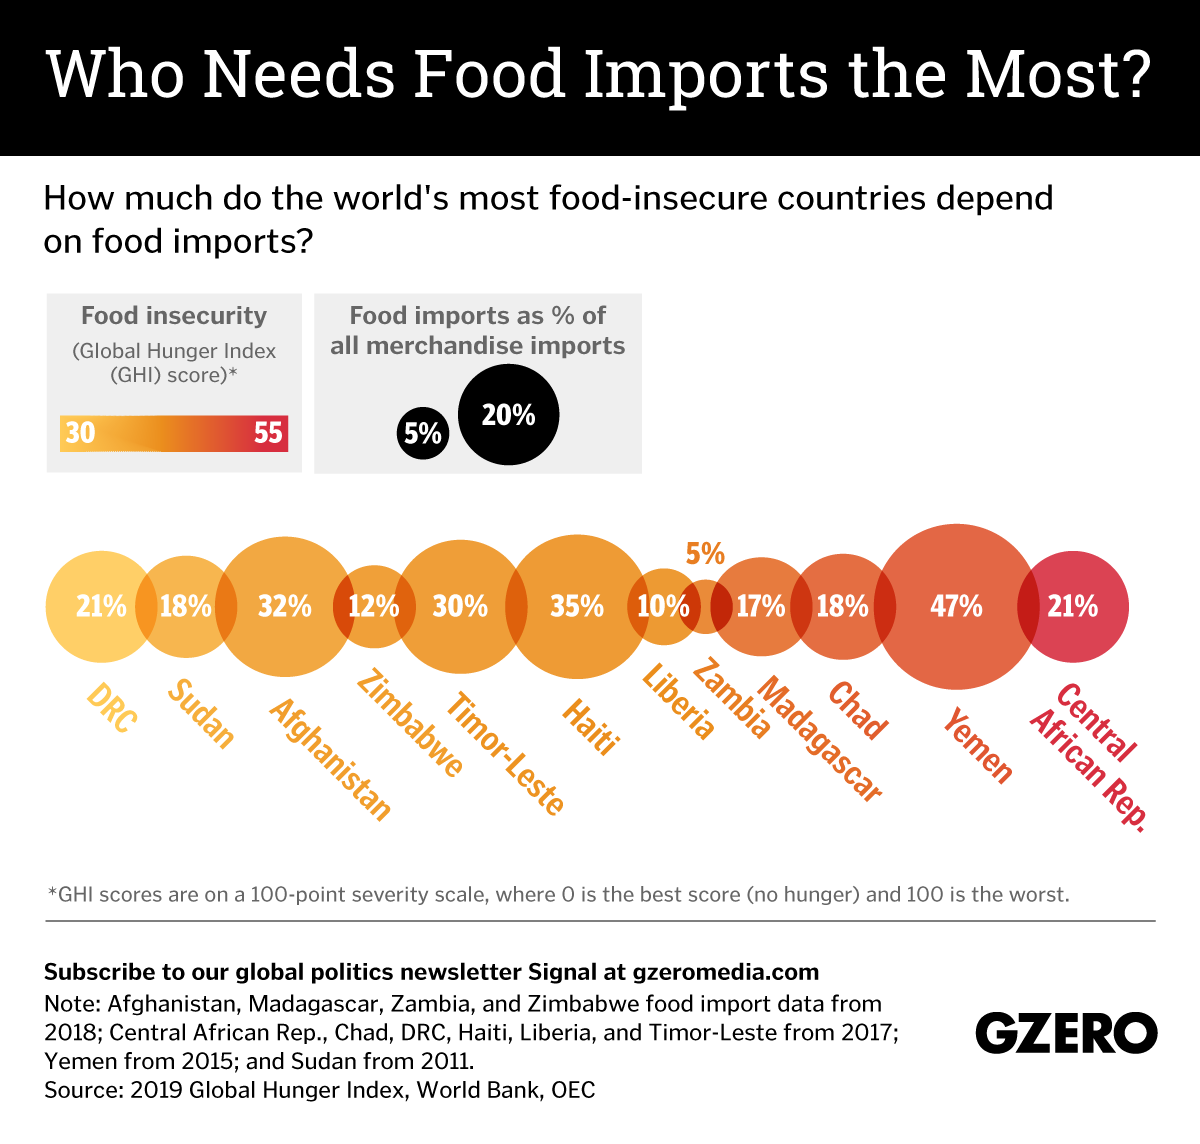 The Graphic Truth: Who needs food imports the most?